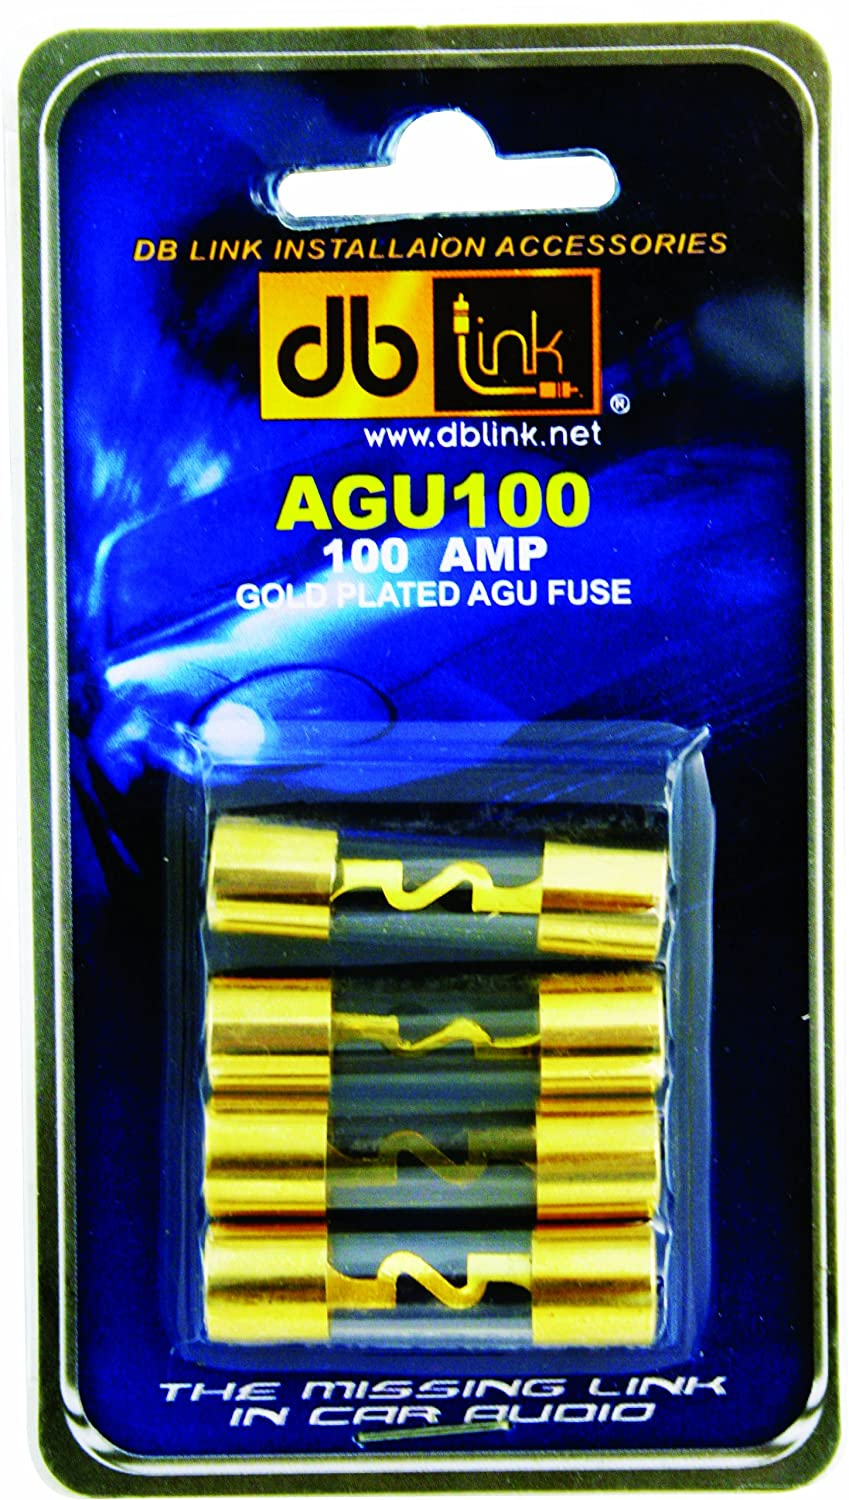 91hP1h3 CKL._SL1500_ amazon com db link agu100 gold agu 100 amp fuses car electronics 200 Amp Fuse Box at virtualis.co